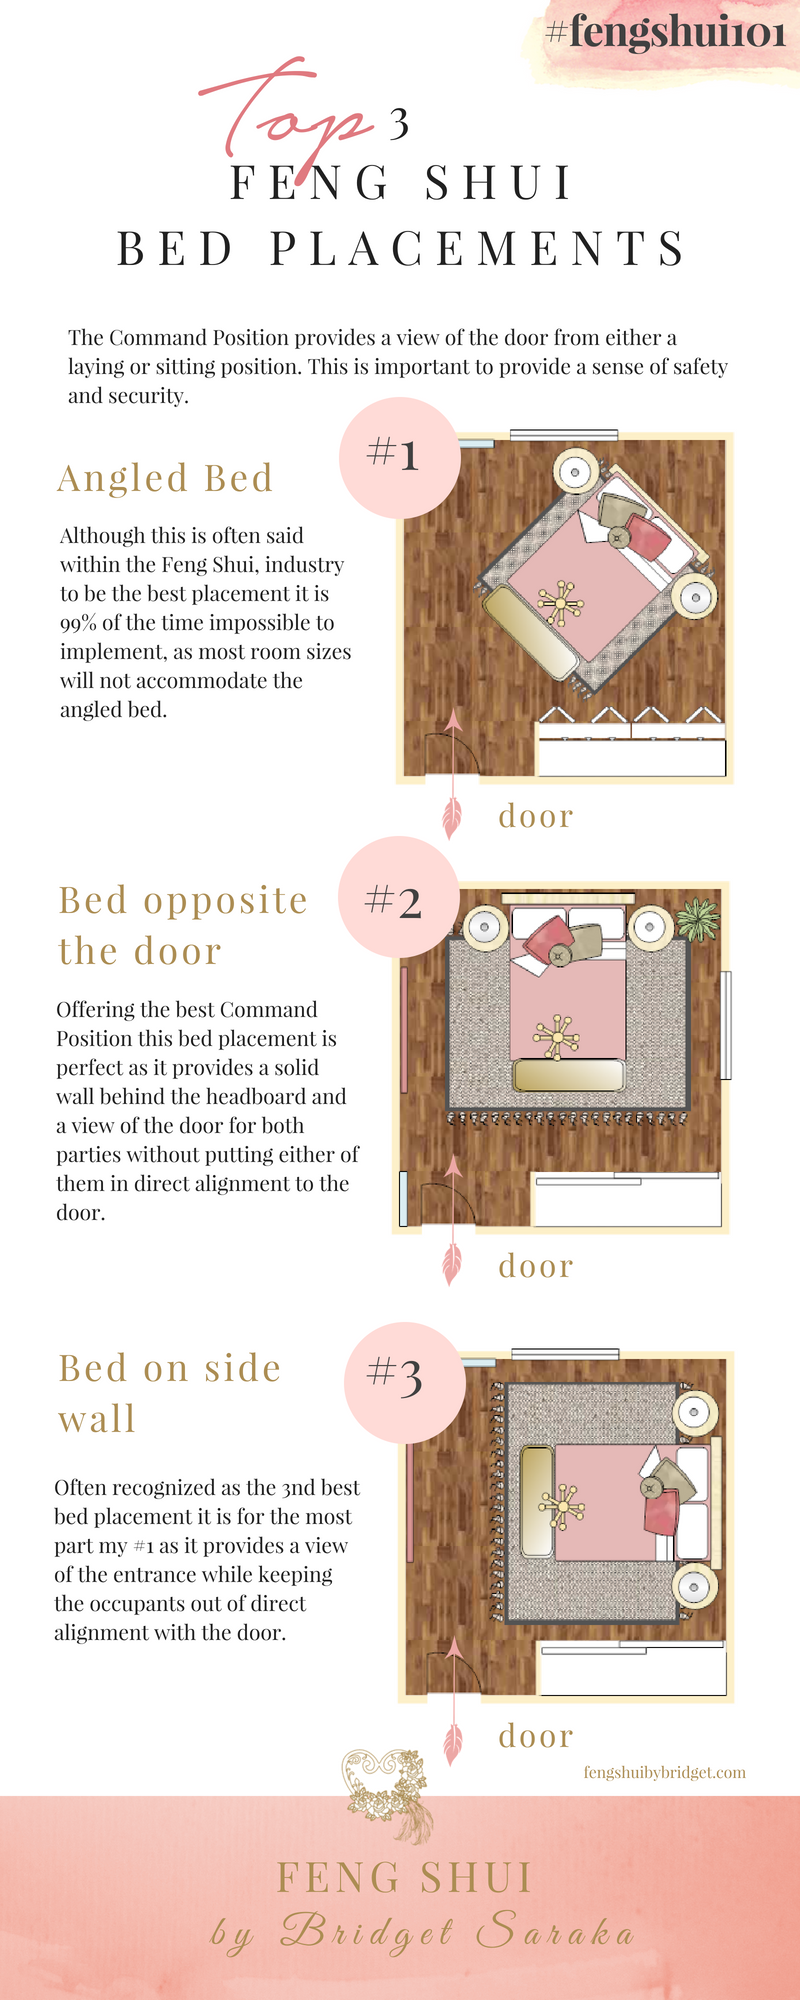 Top 3 Best Feng Shui Bed Placements fengshui101 Feng